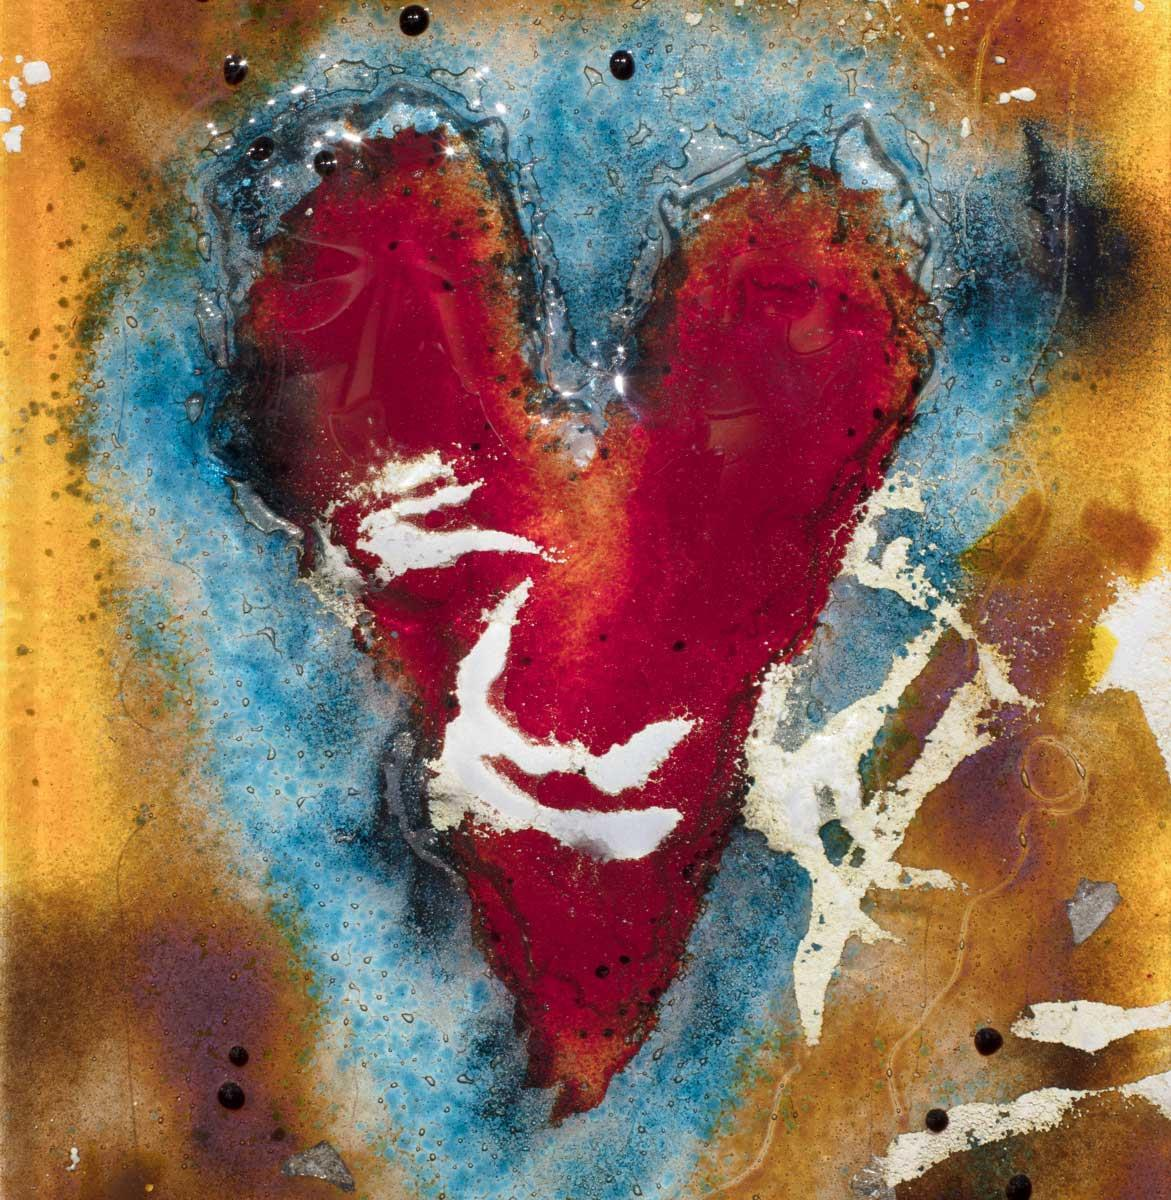 Heart Of Glass IX - Original Amanda Jones